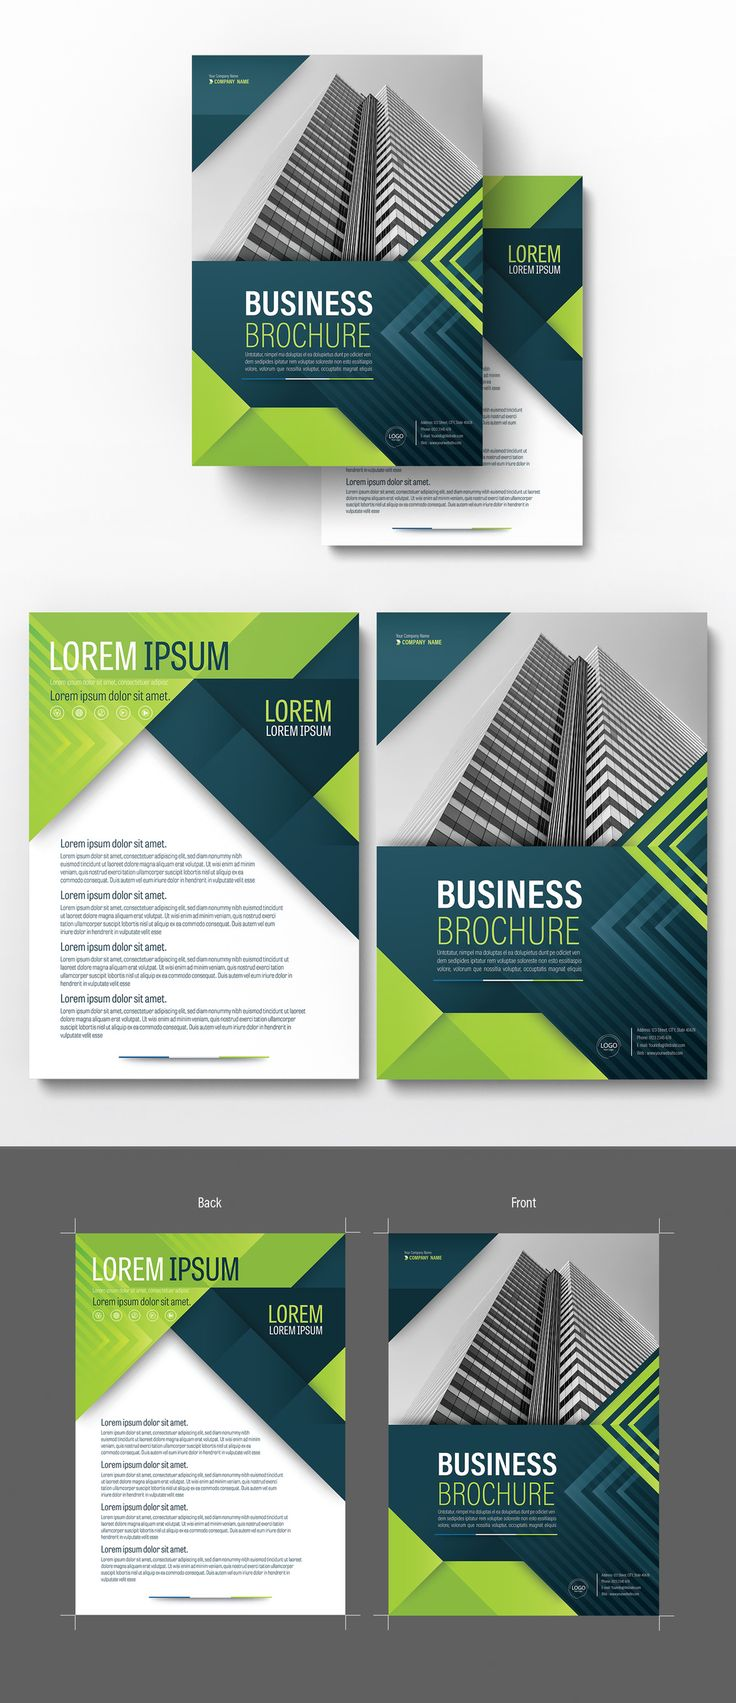 book report brochure template - 25 unique annual report covers ideas on pinterest